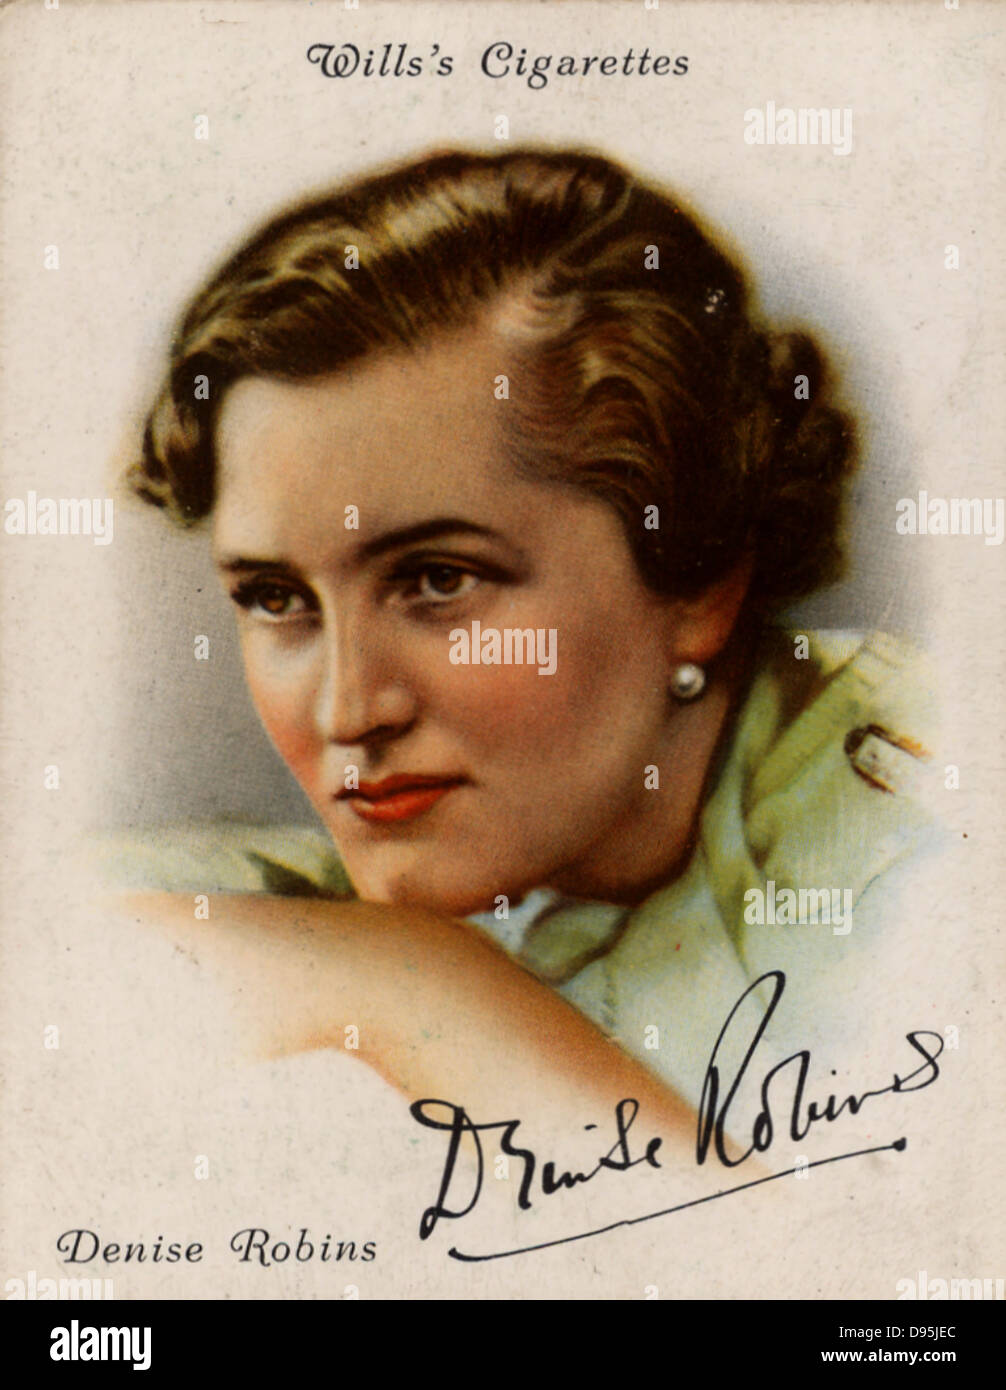 Denise Robins (1897-1985) British popular novelist, dramatist and short story writer. From a series of cards of - Stock Image